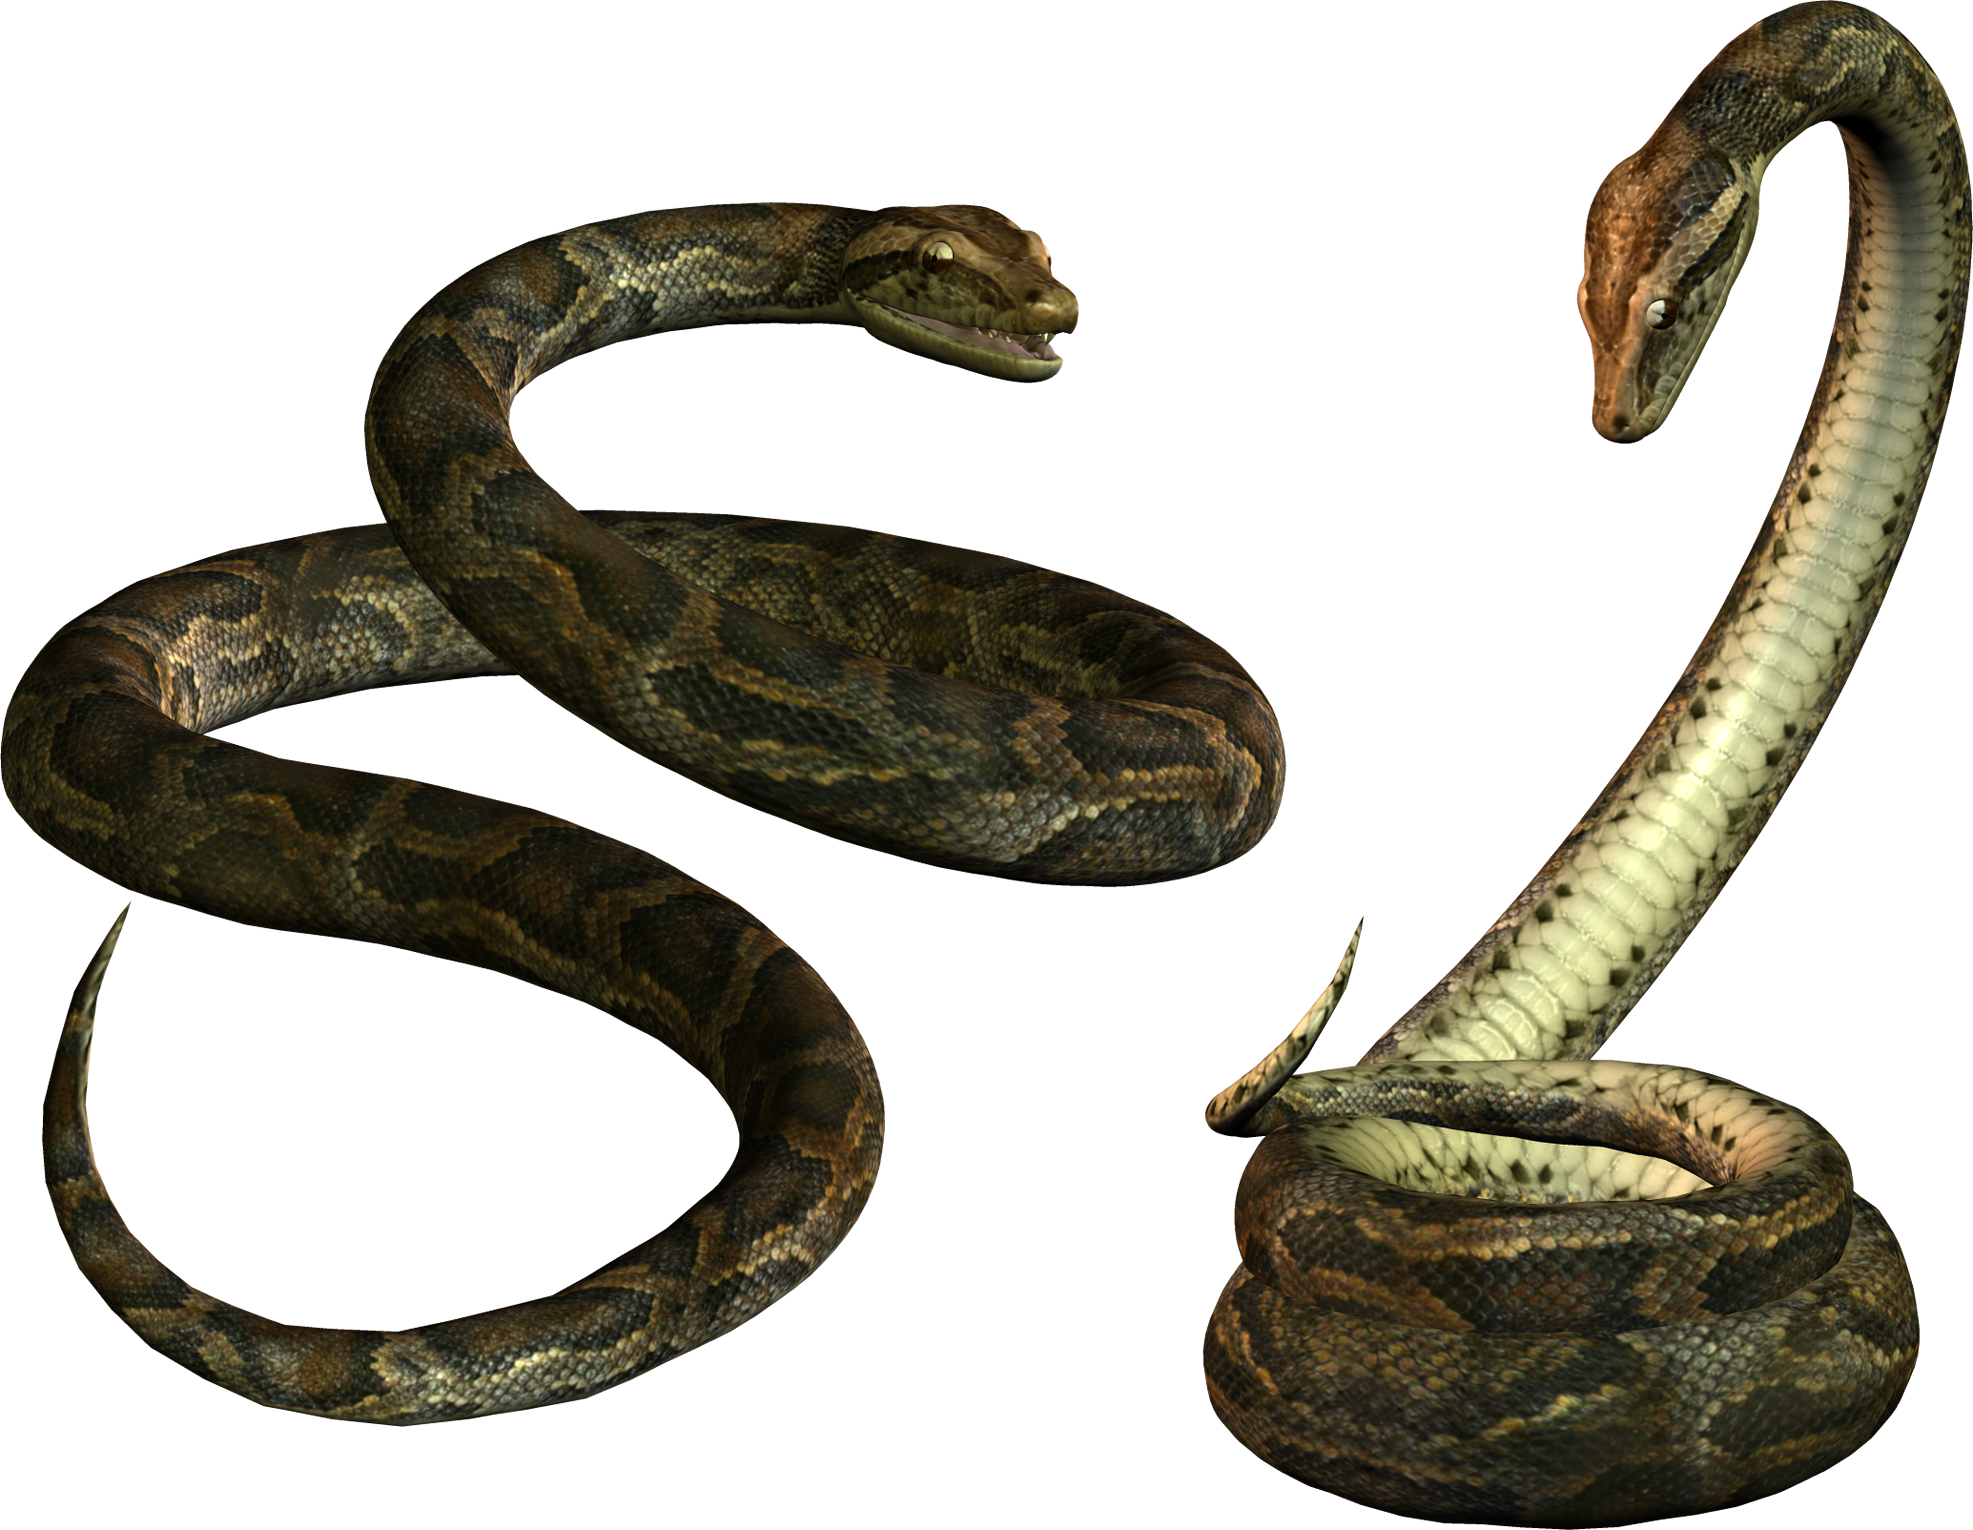 Two Side By Side Anaconda Transparent Image 27465